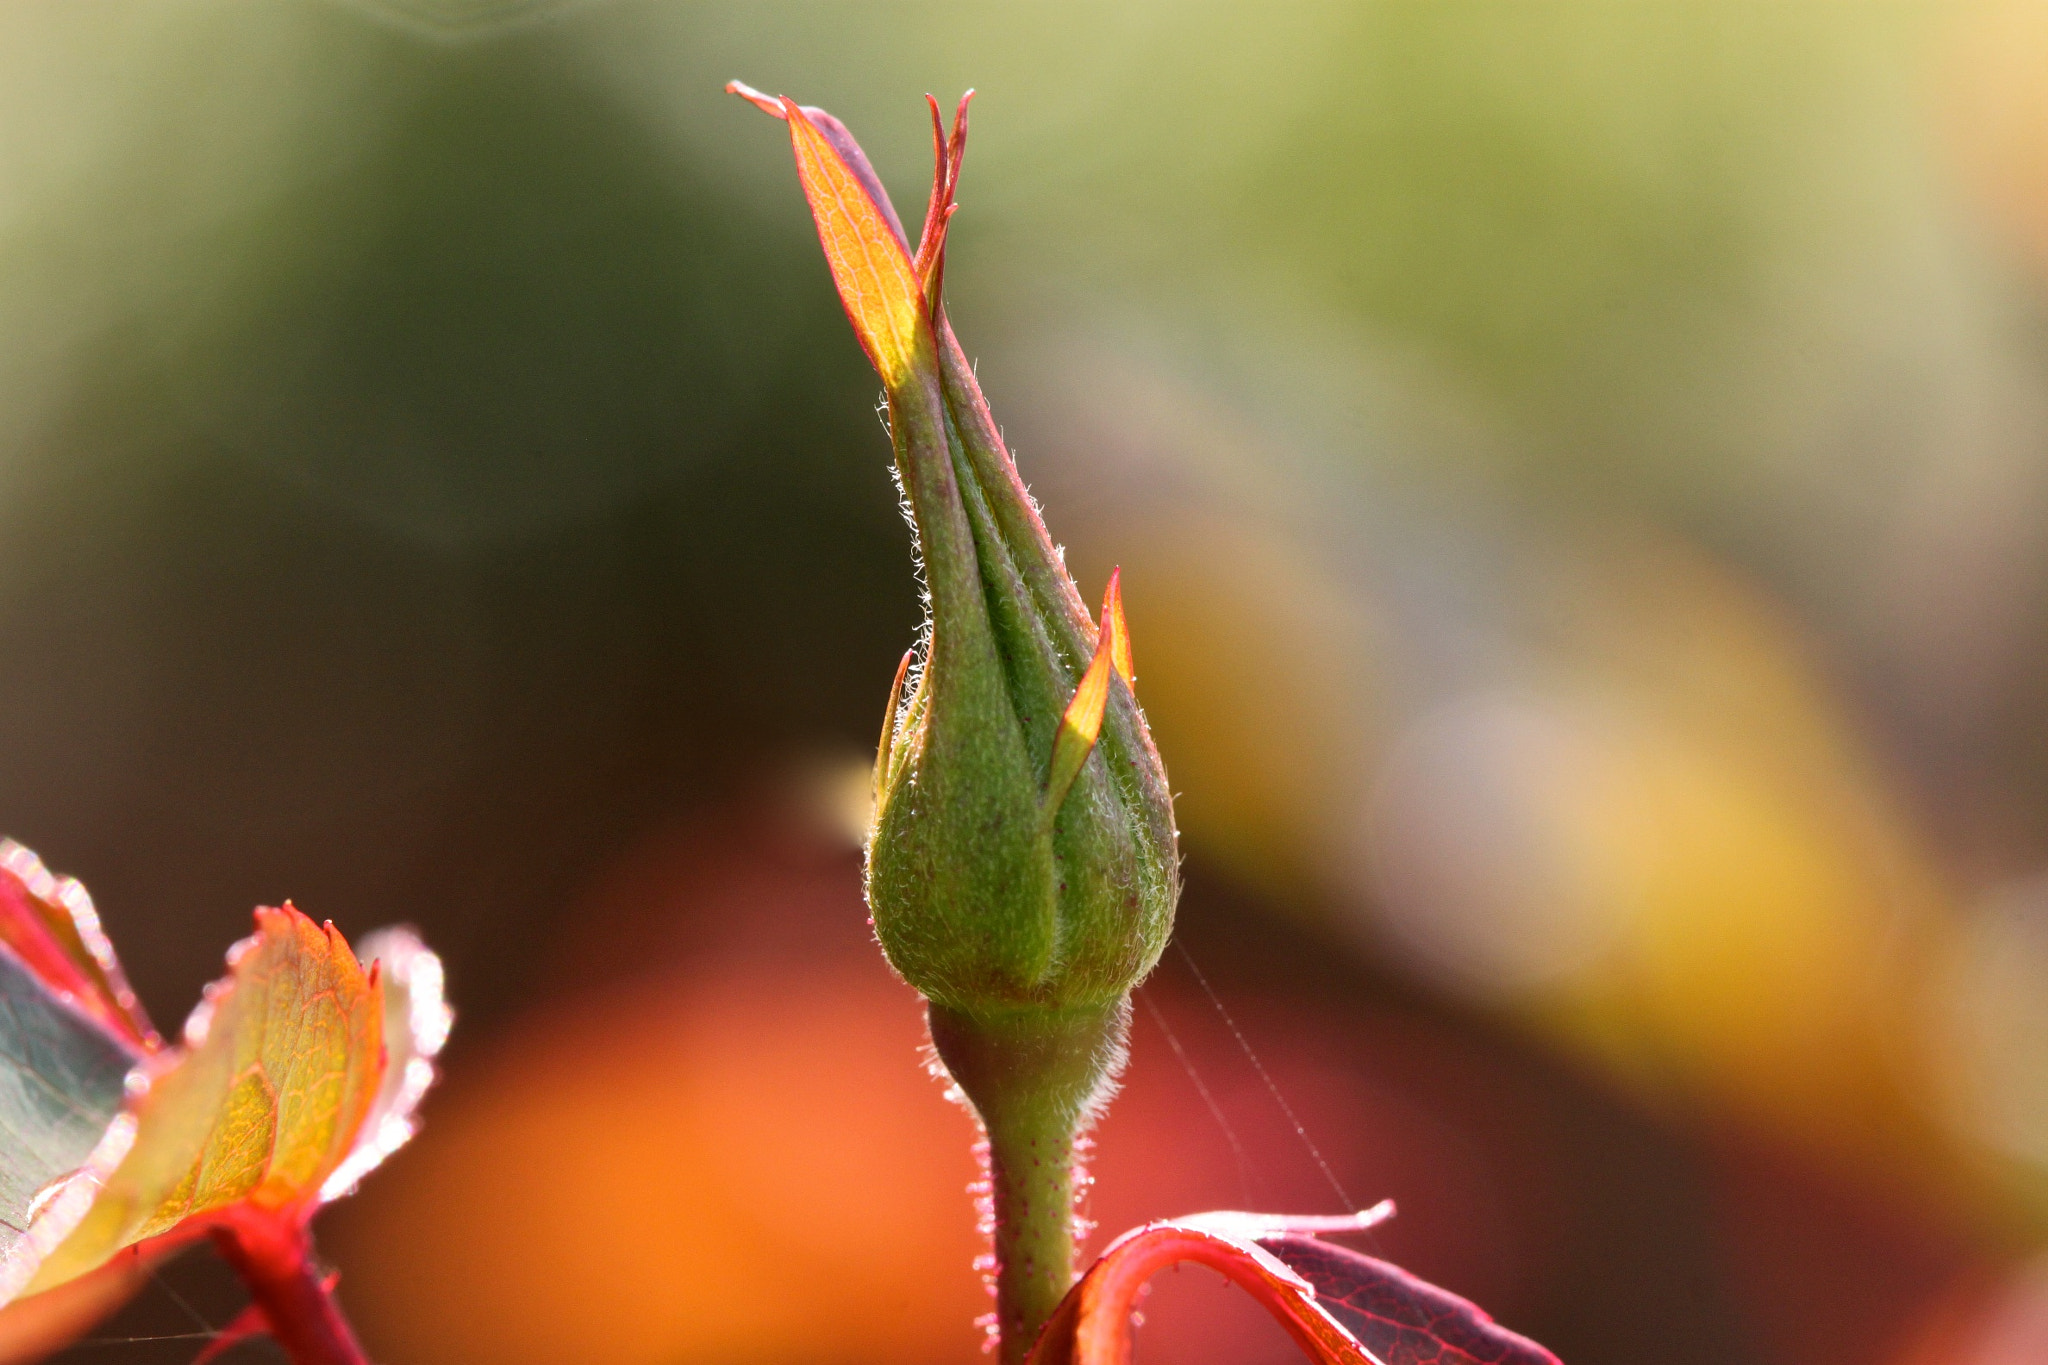 Photograph Leaf Bud  by Donna Seen on 500px